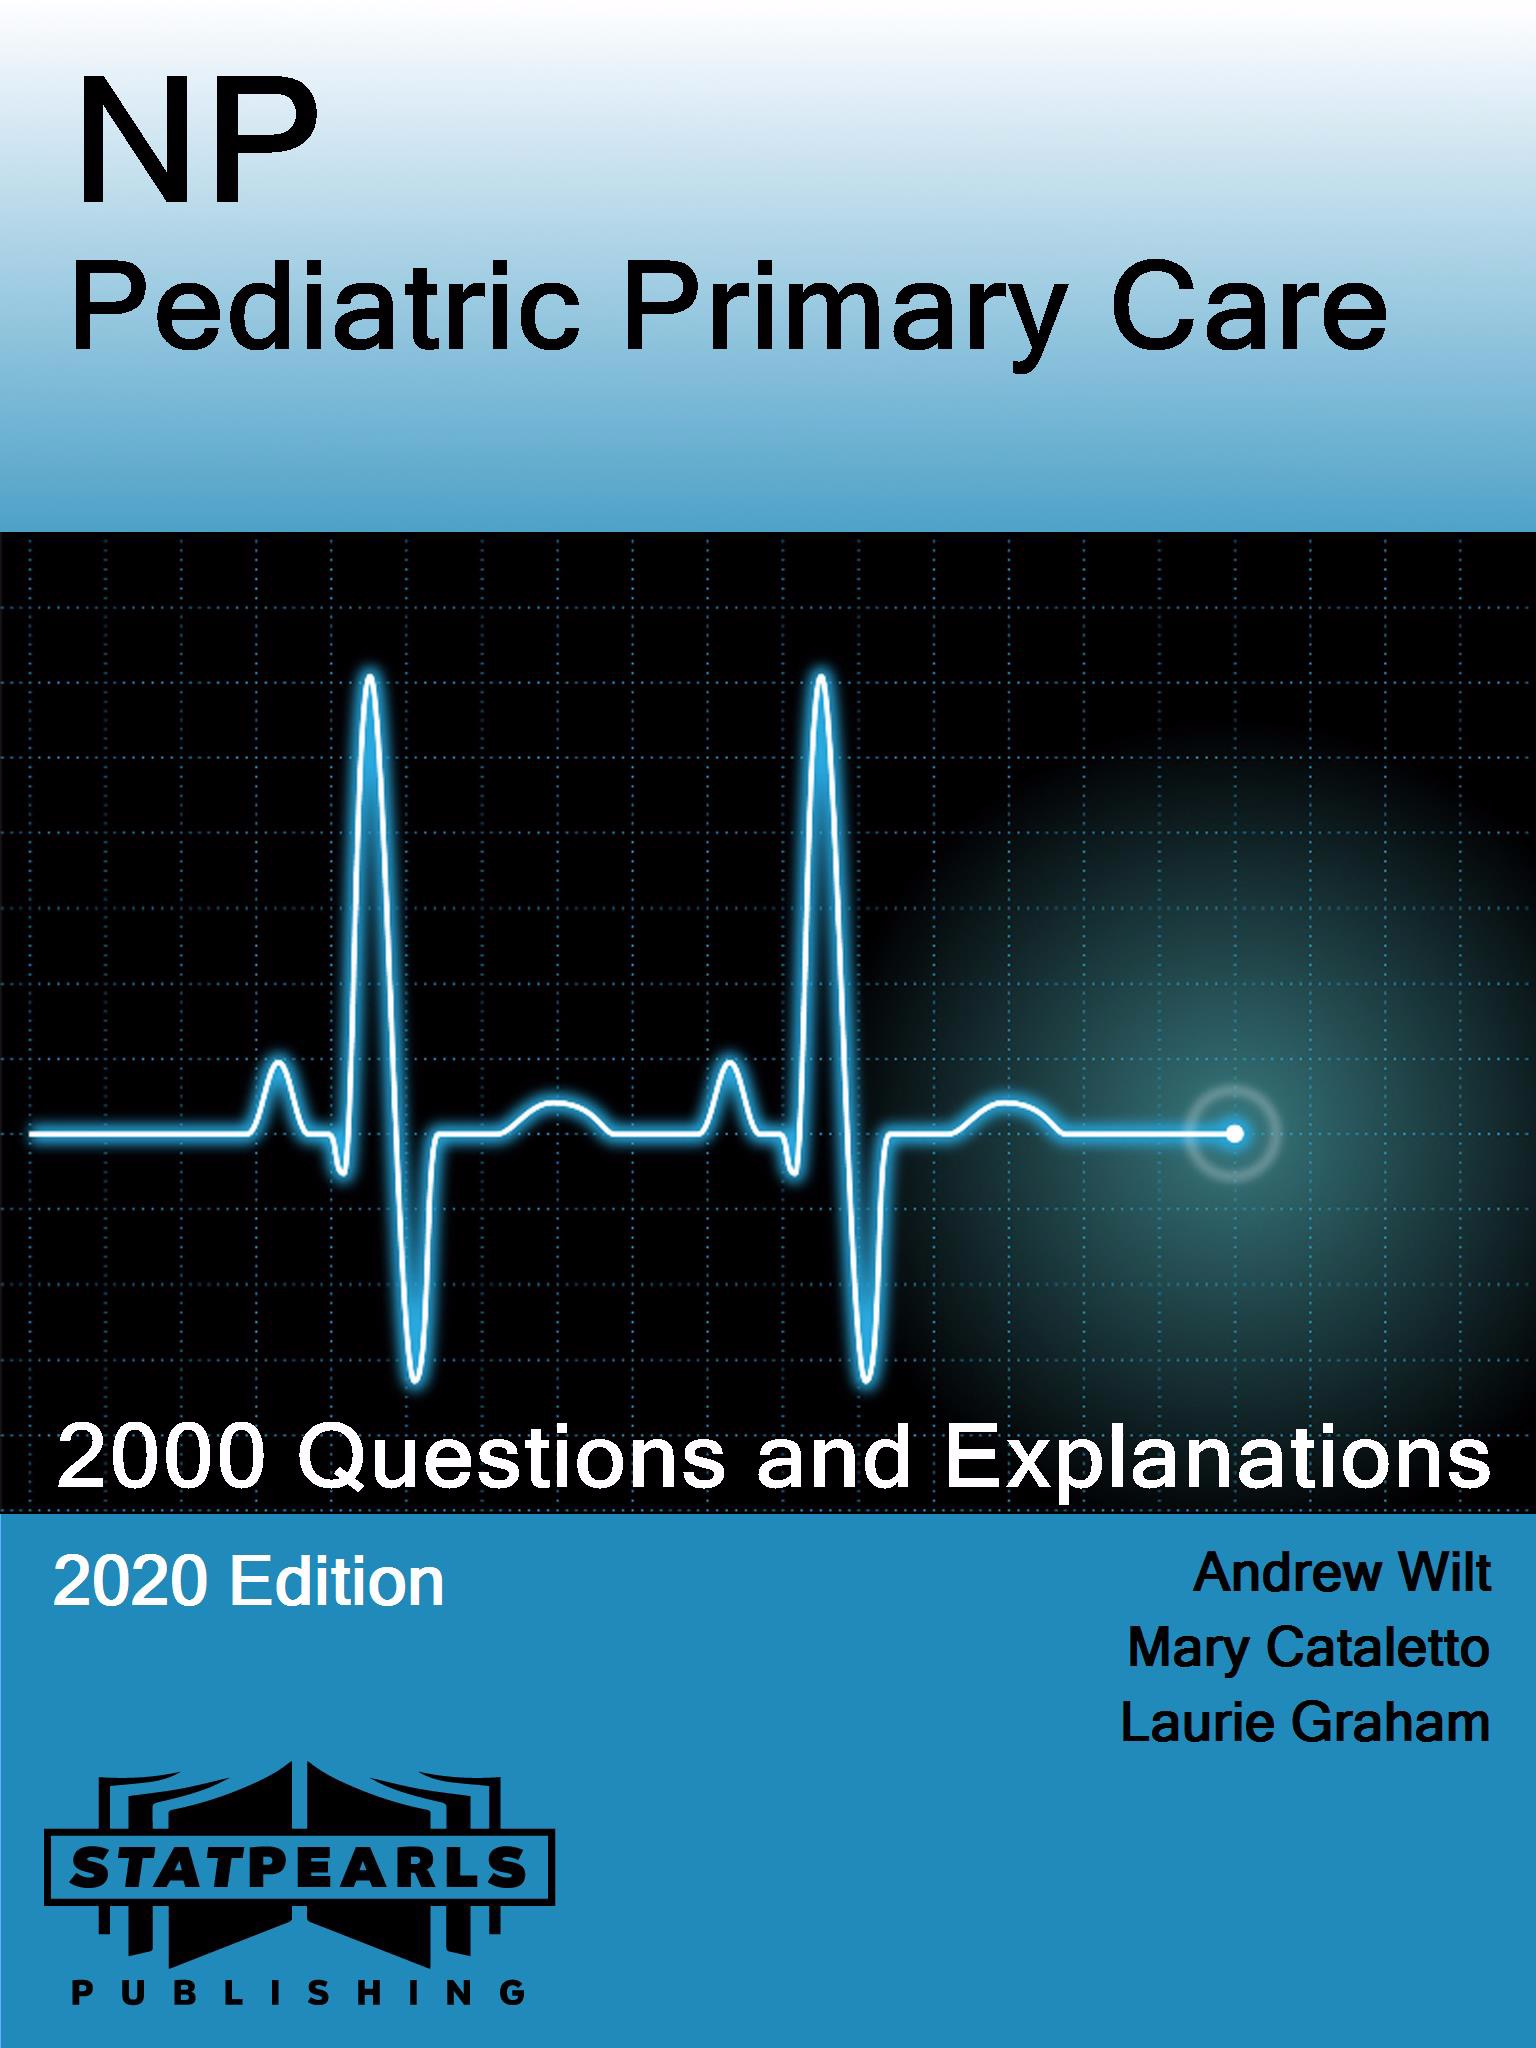 NP Pediatric Primary Care